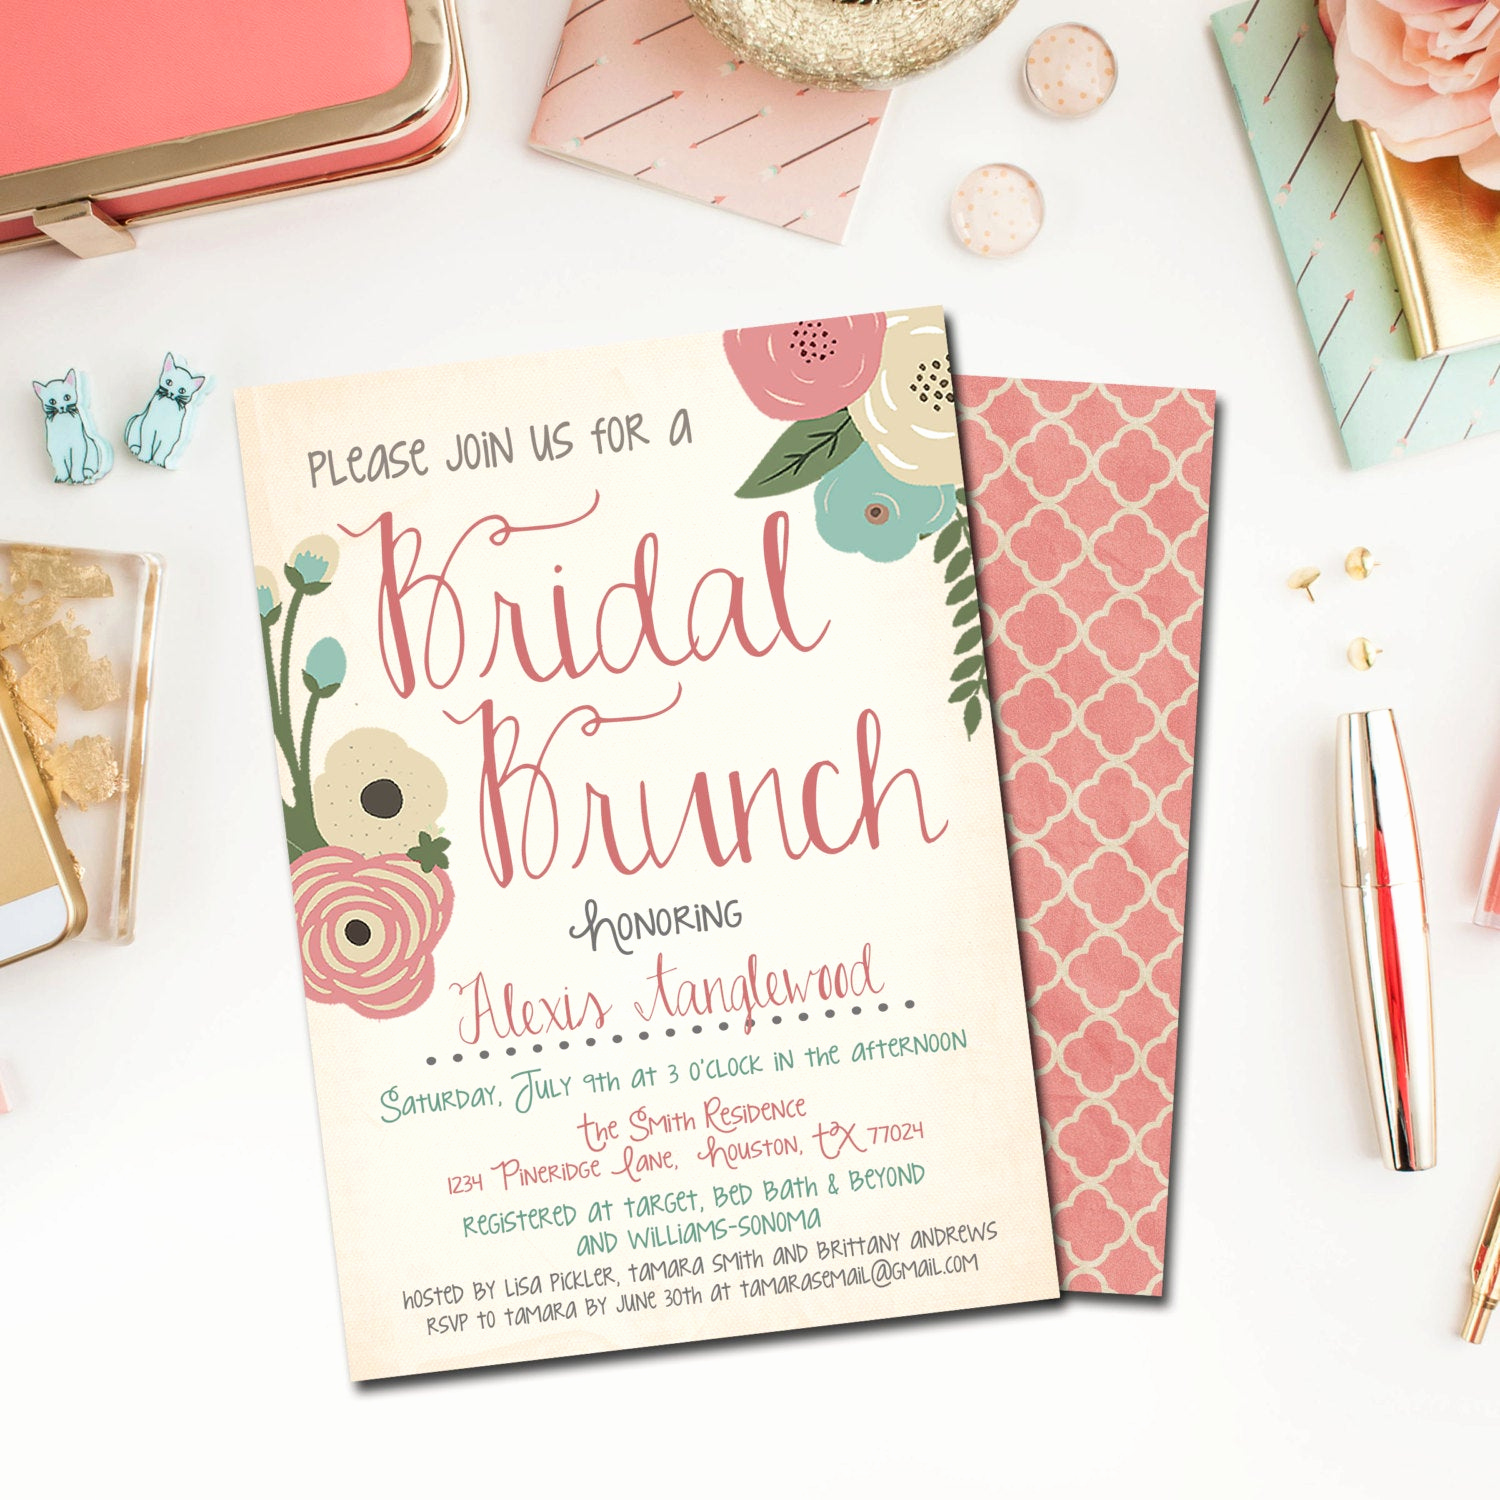 Bridal Shower Brunch Invitation Wording Luxury Bridal Shower Invitation Bridal Shower Invite Bridal Shower